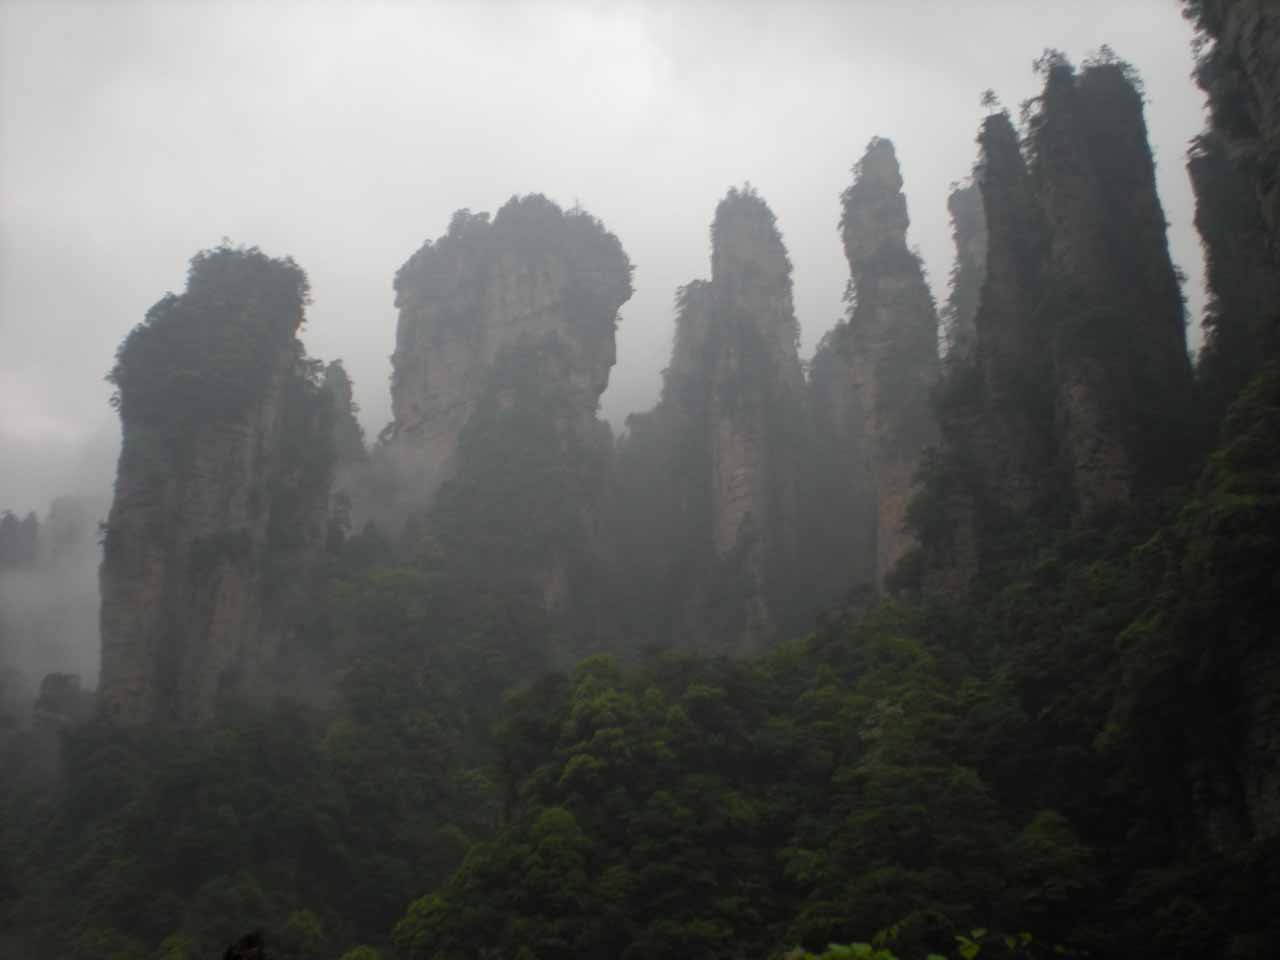 Looking up at more pinnacles from the bottom of the elevator at Zhangjiajie